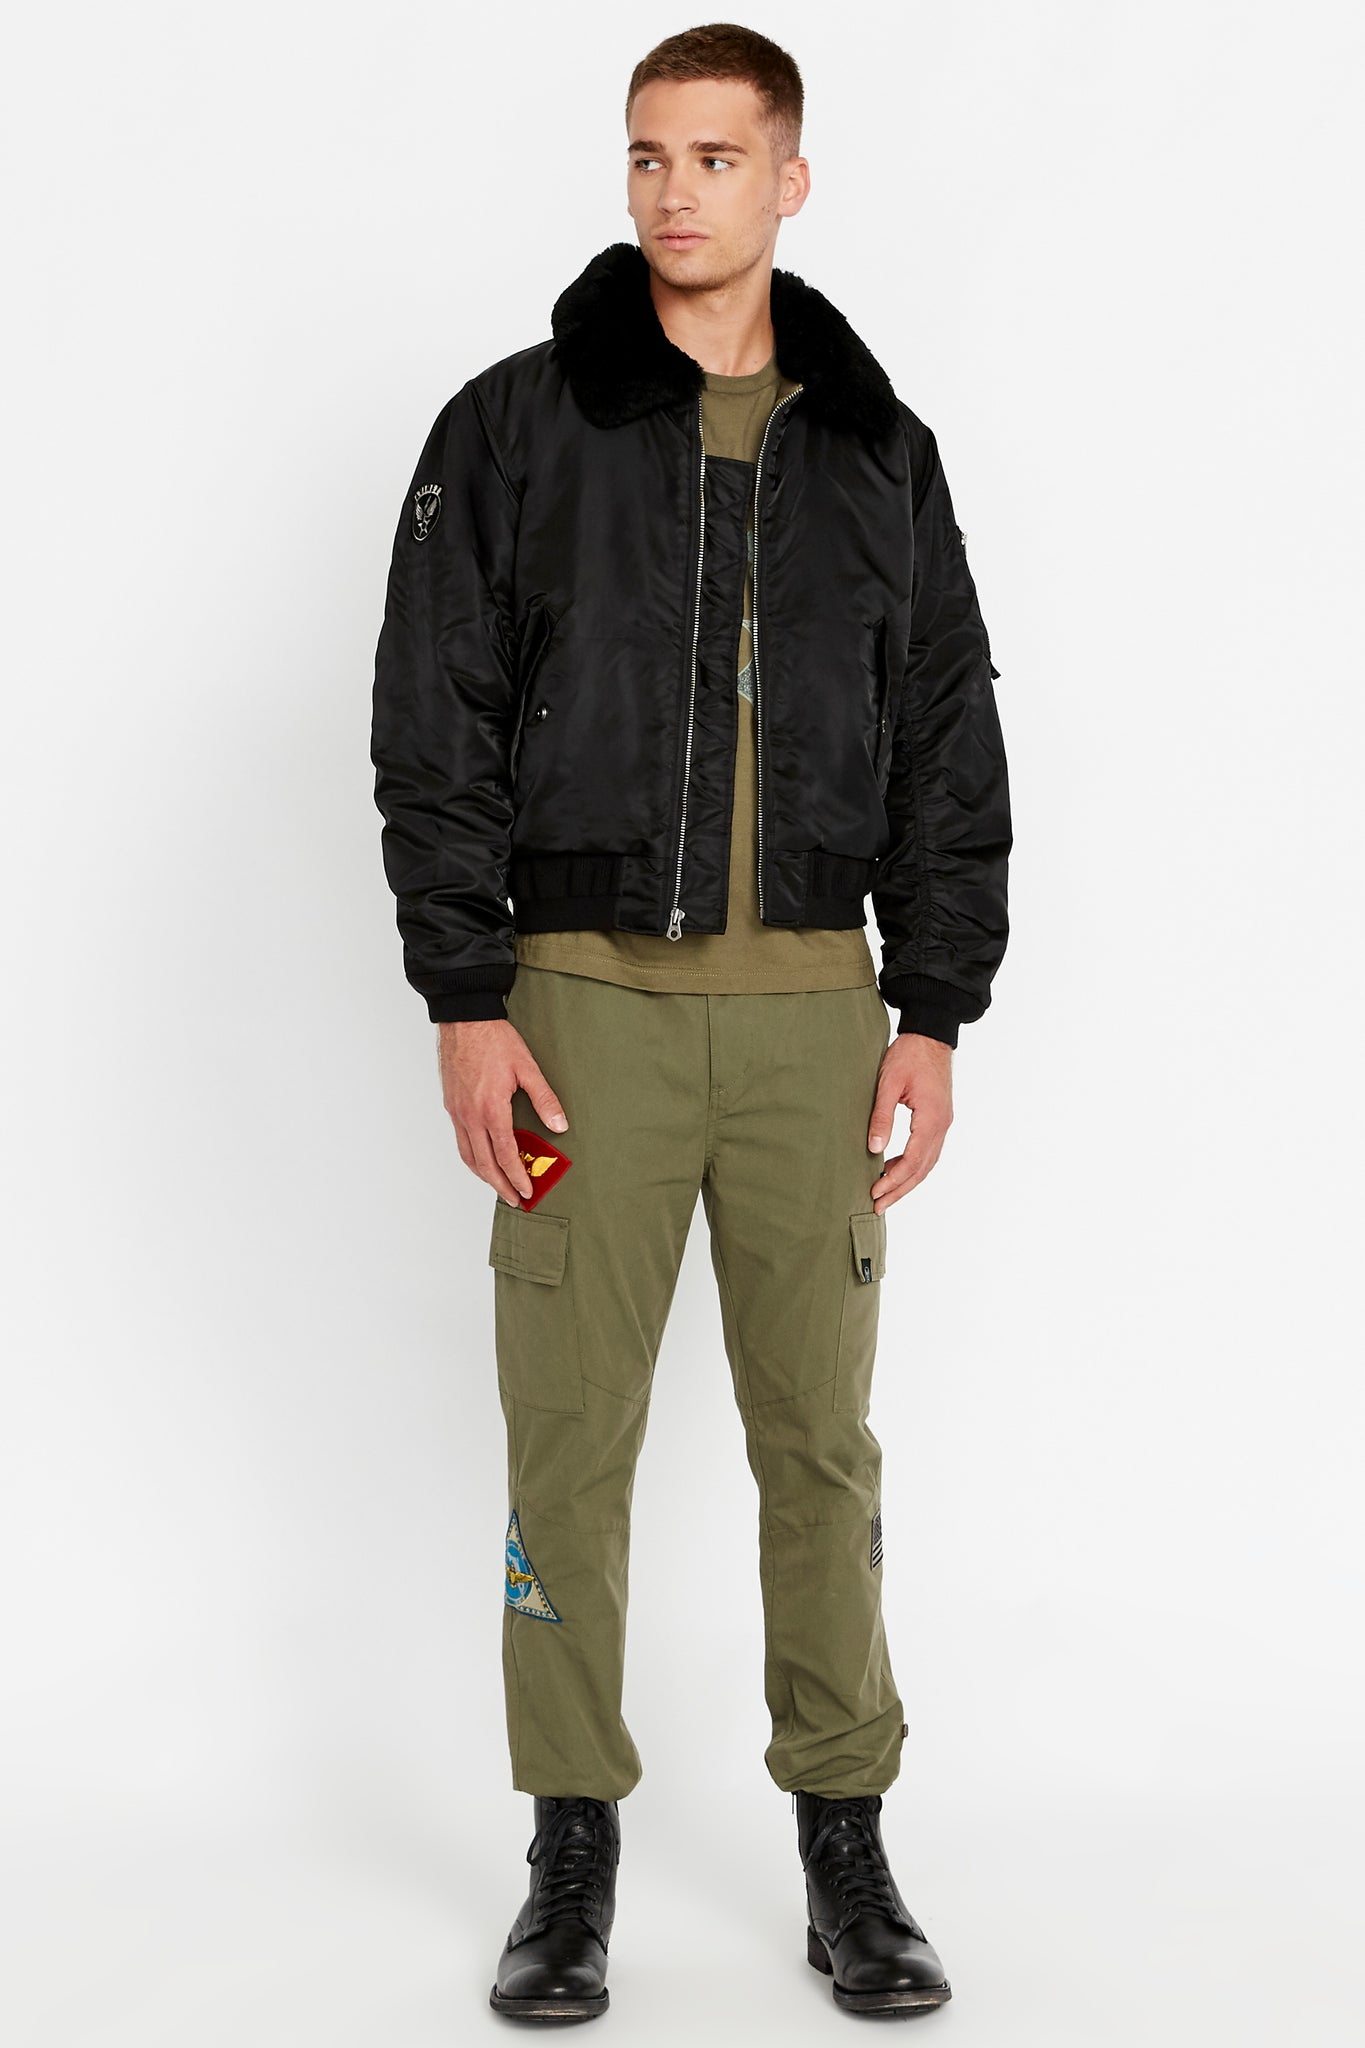 Full front view of men wearing an open black bomber jacket with a sherpa-lined collar and two side flap pockets and one patch on the right sleeve, one utility pocket on the left sleeve and olive pants